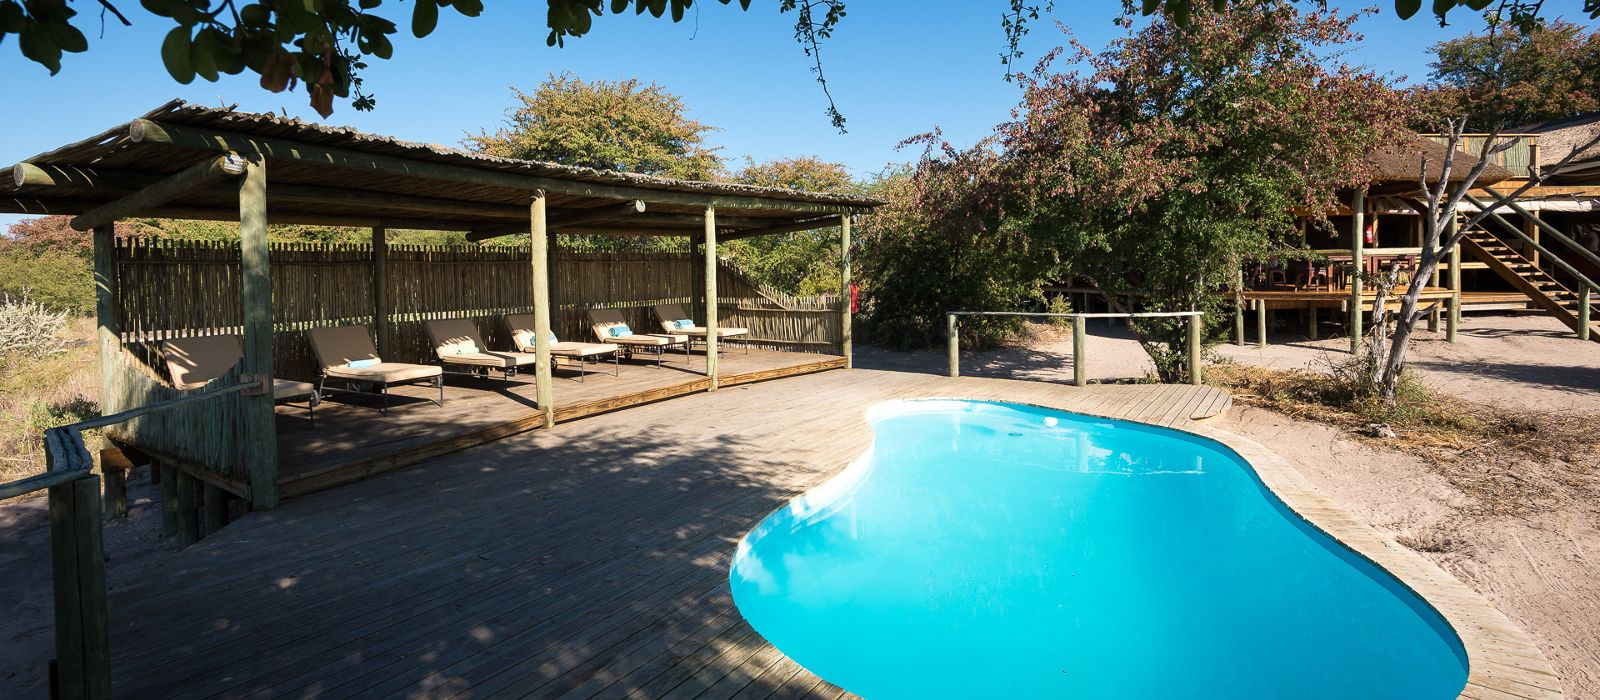 Hotel Kalahari Plains Camp Botswana